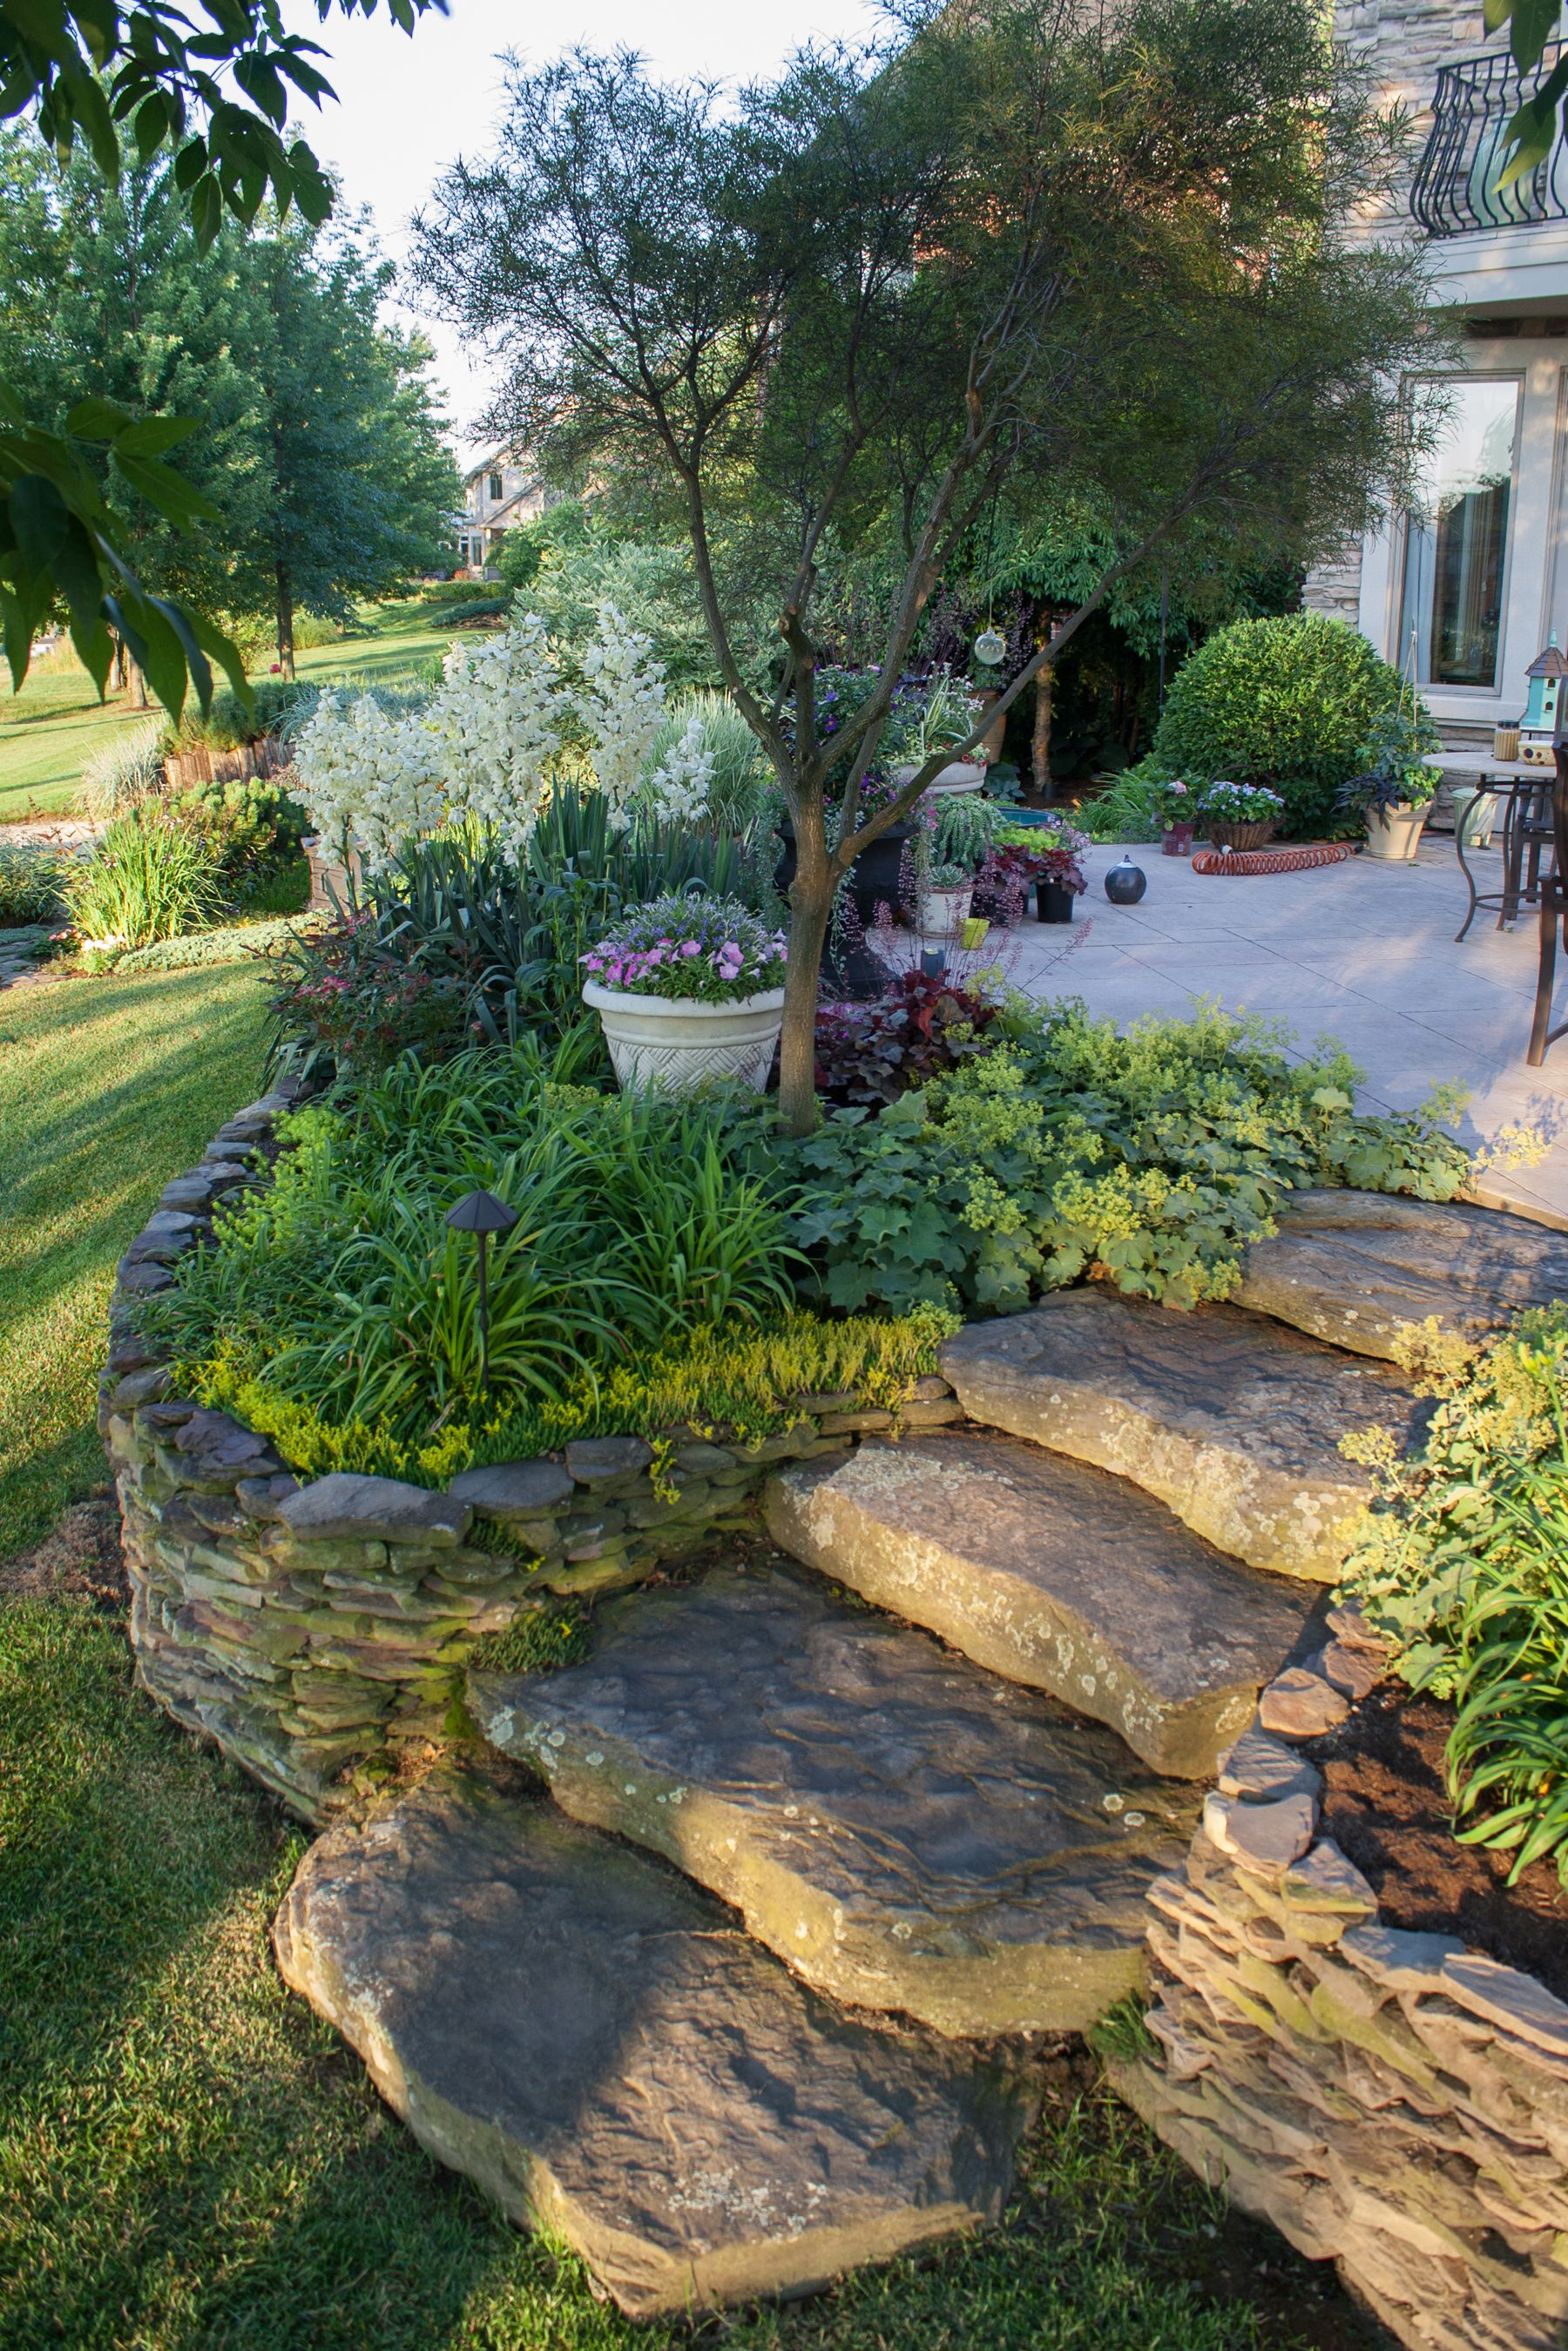 How To Design A Garden 16 Stylish Tips Gardens Flowers pertaining to Landscaping A Sloped Backyard